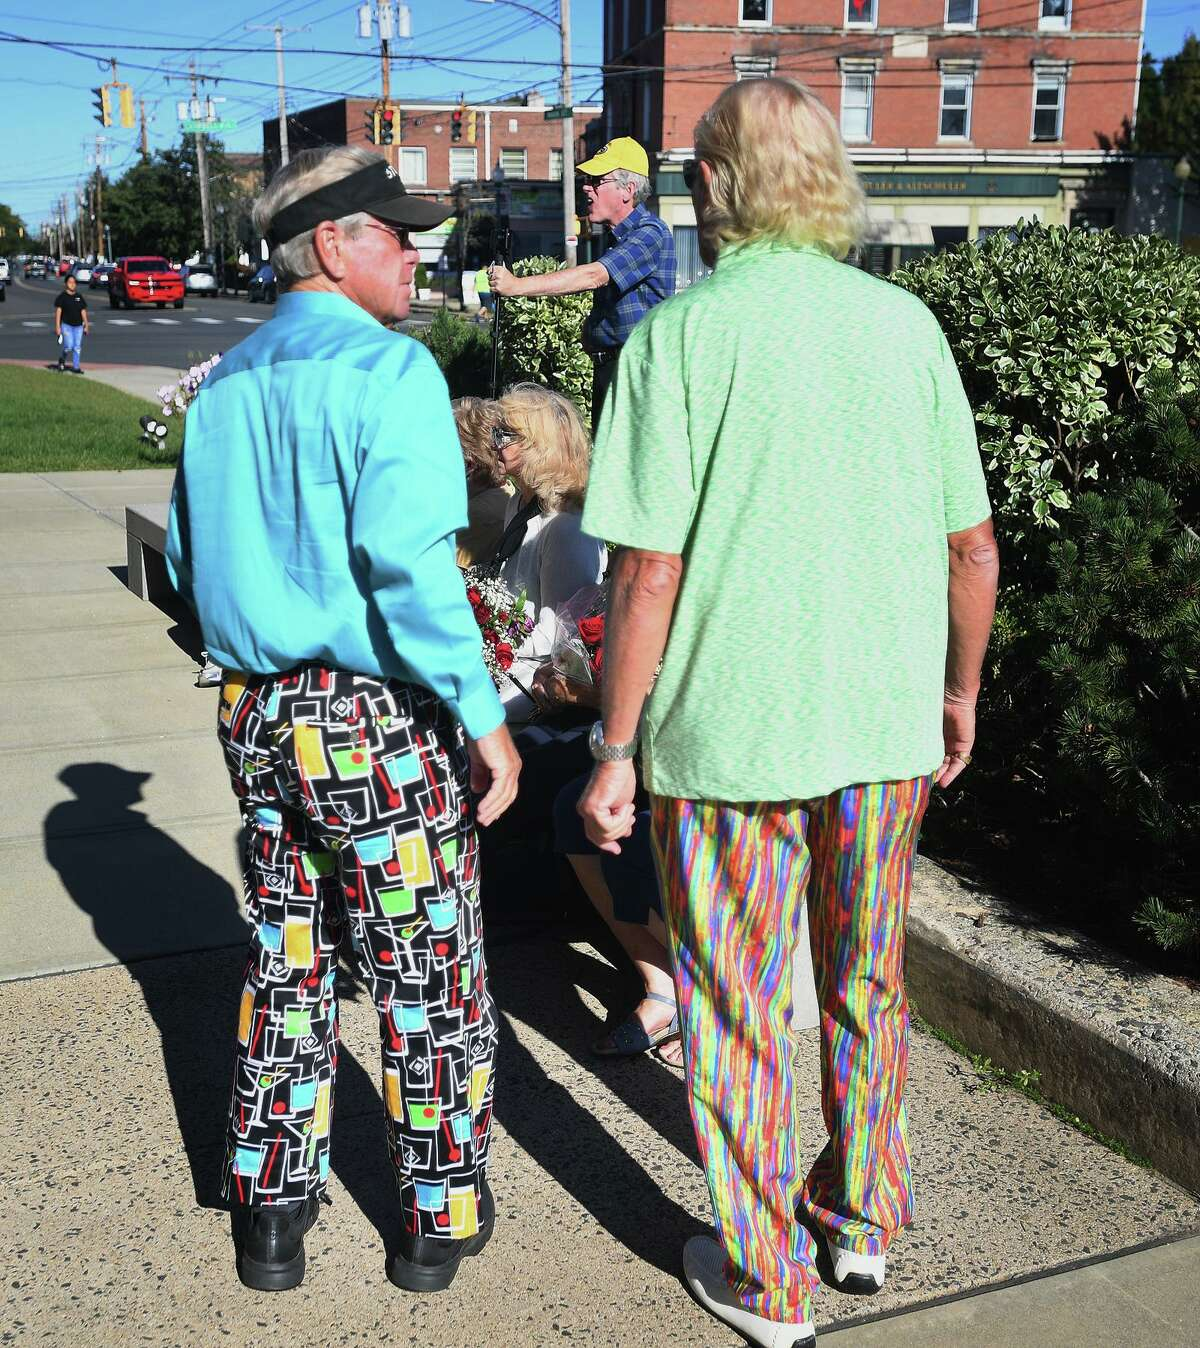 Colorful clothing among attendees at the crowning of Noreen Adams of West Haven as Ms. Connecticut Senior World in a ceremony outside City Hall West Haven Sept. 20, 2021.